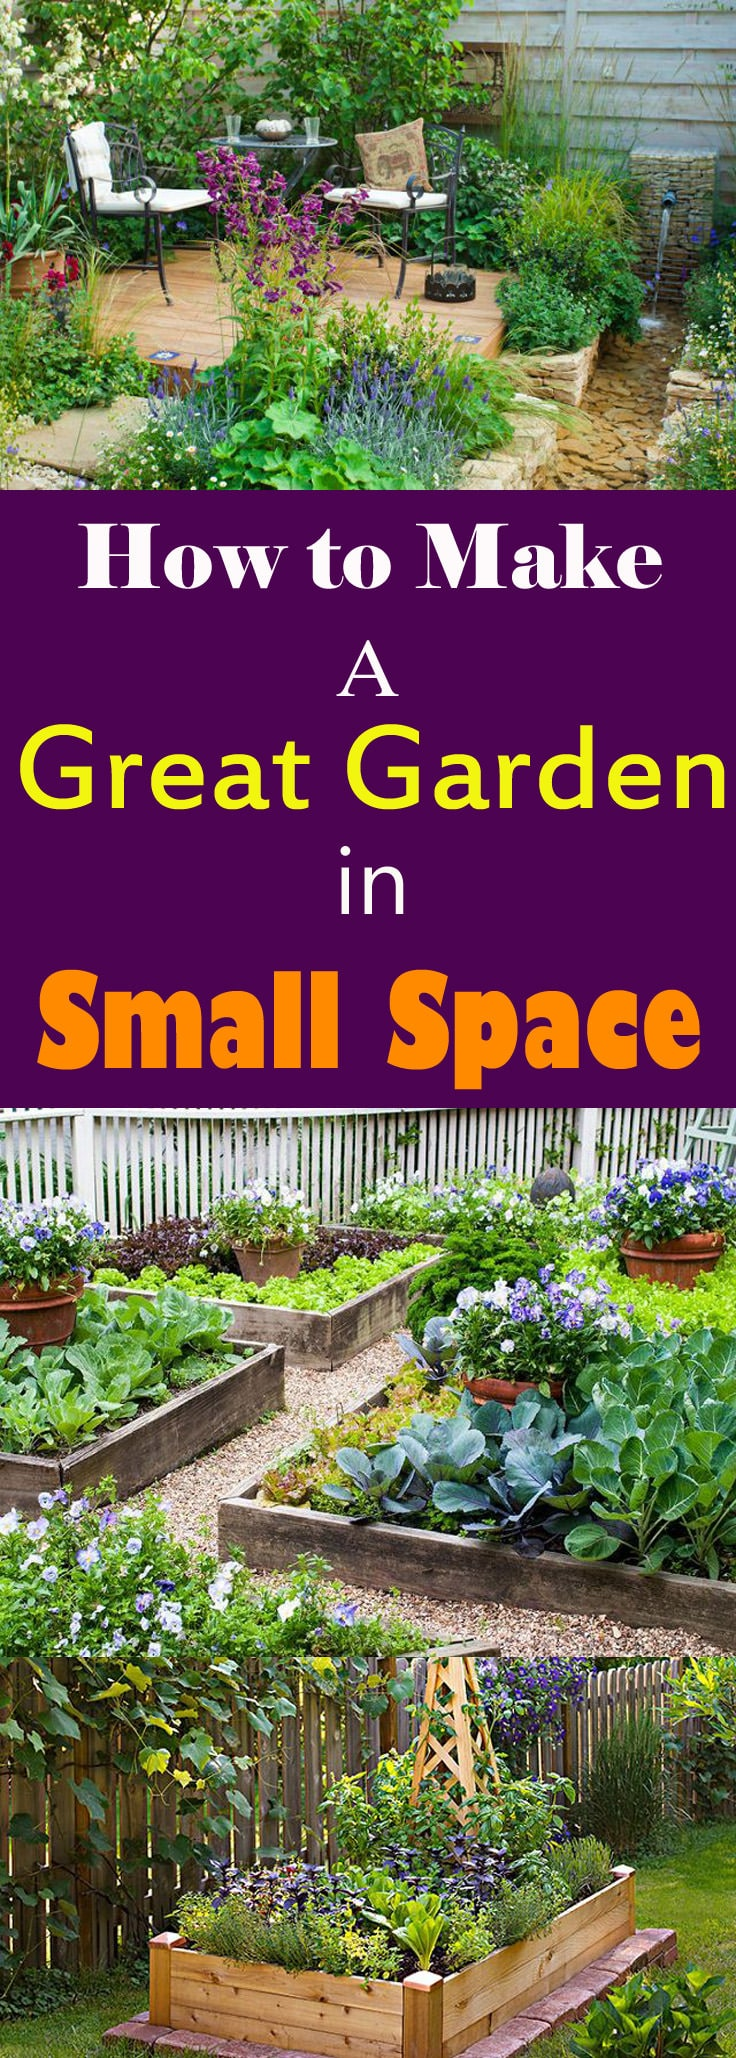 You don't need a big yard to have a great garden, it is even possible in smallest of space. Take a look!